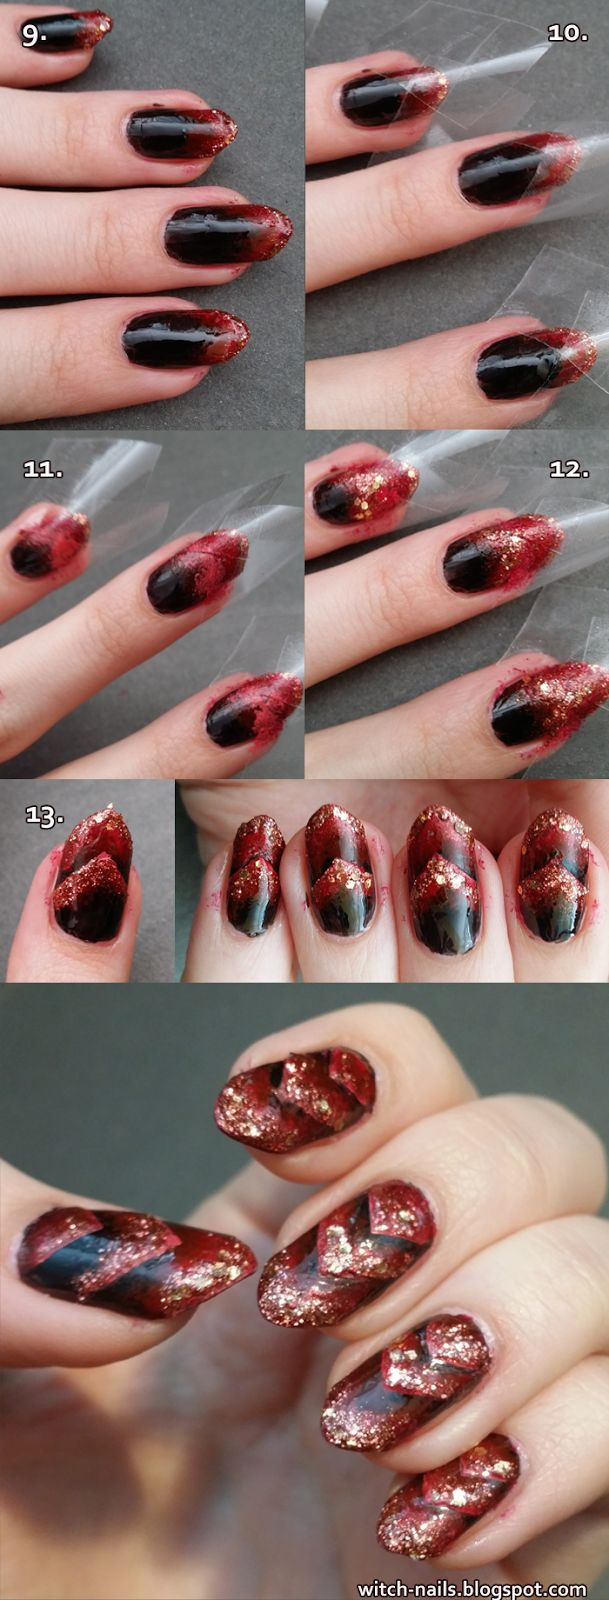 Dragon nails tutorial with step by step pictures!